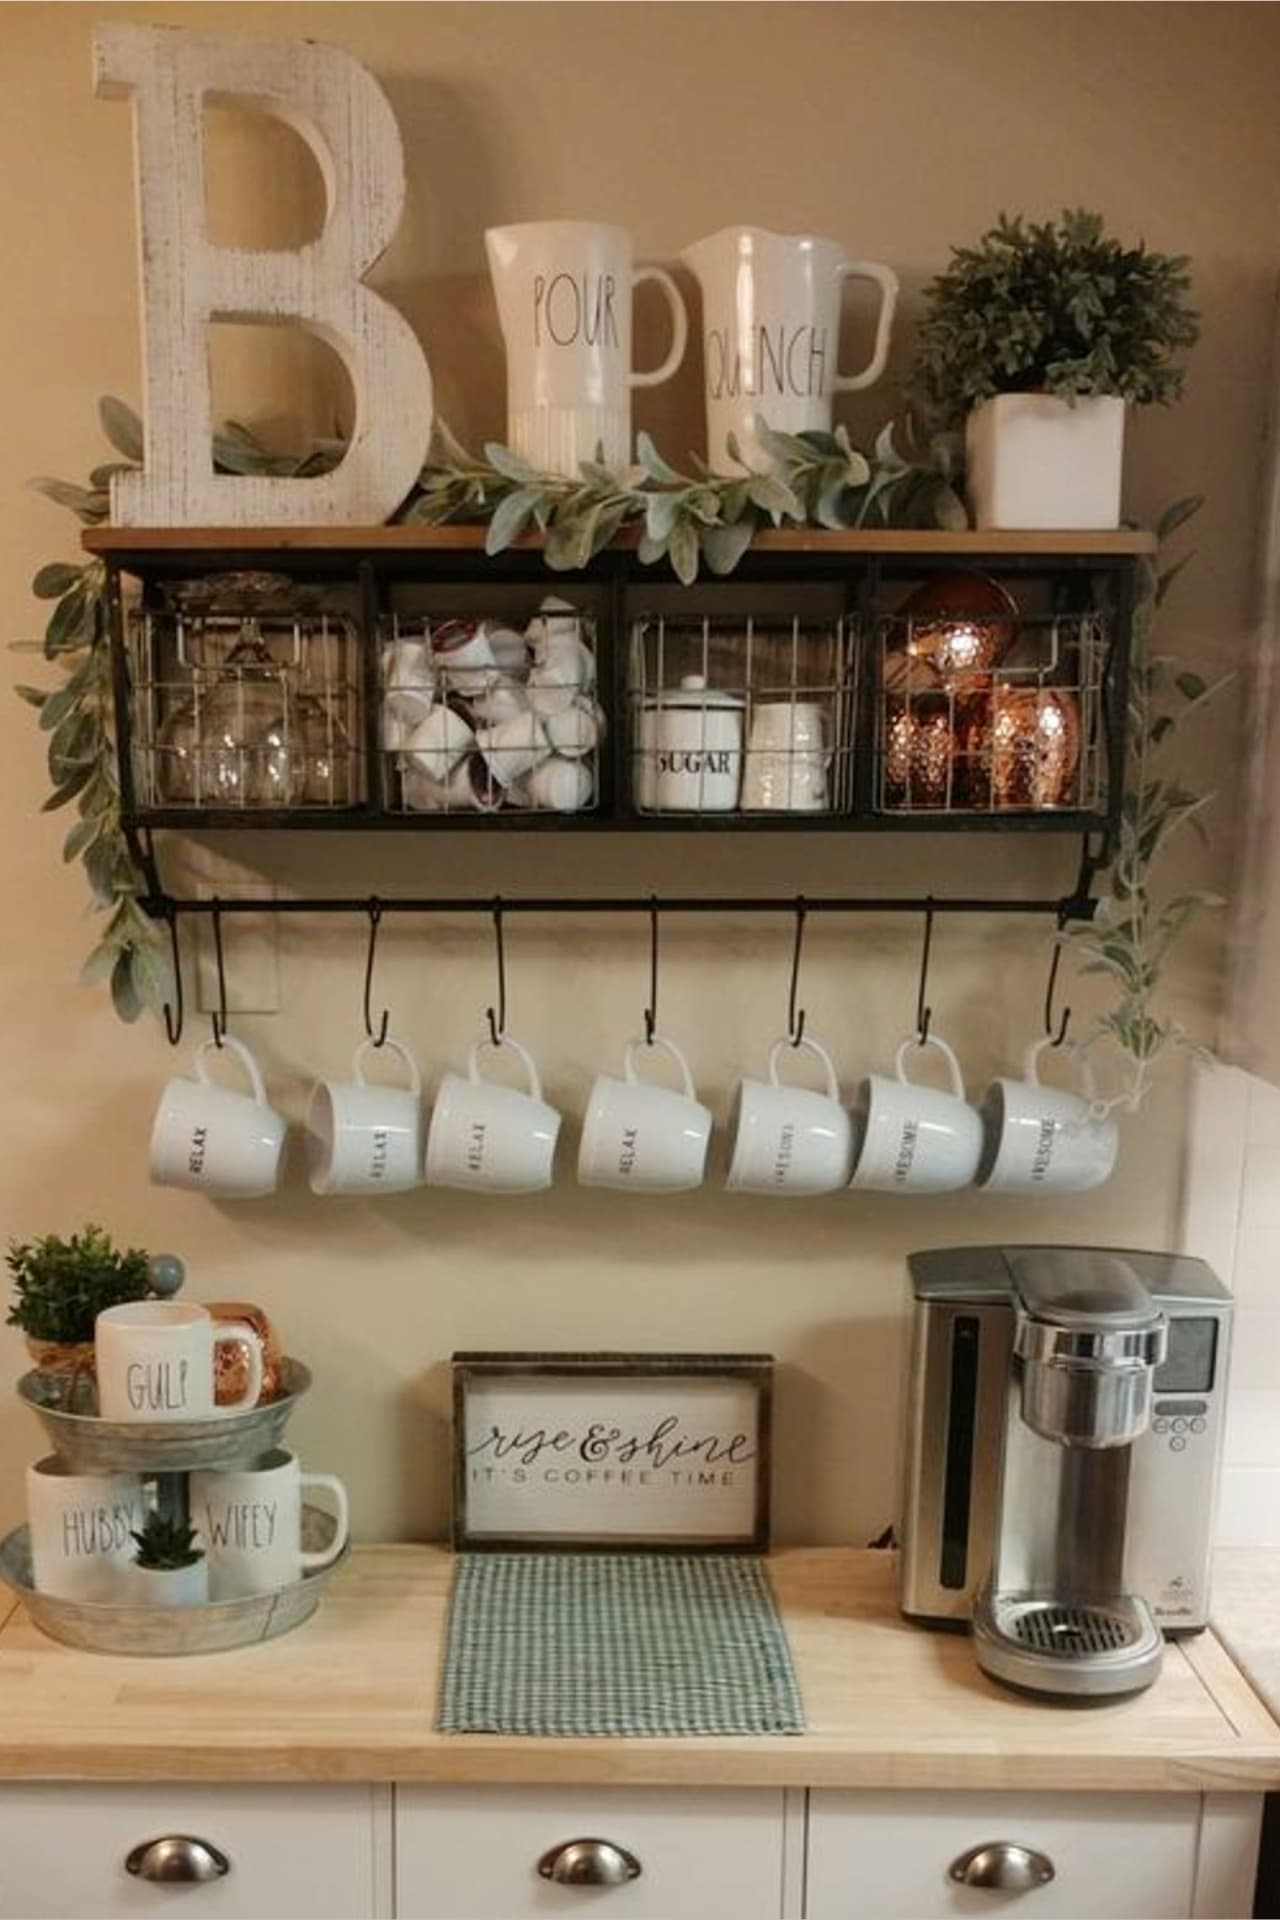 declutter kitchen countertops with these kitchen clutter solutions - coffee bar ideas to organize kitchen counters on a budget